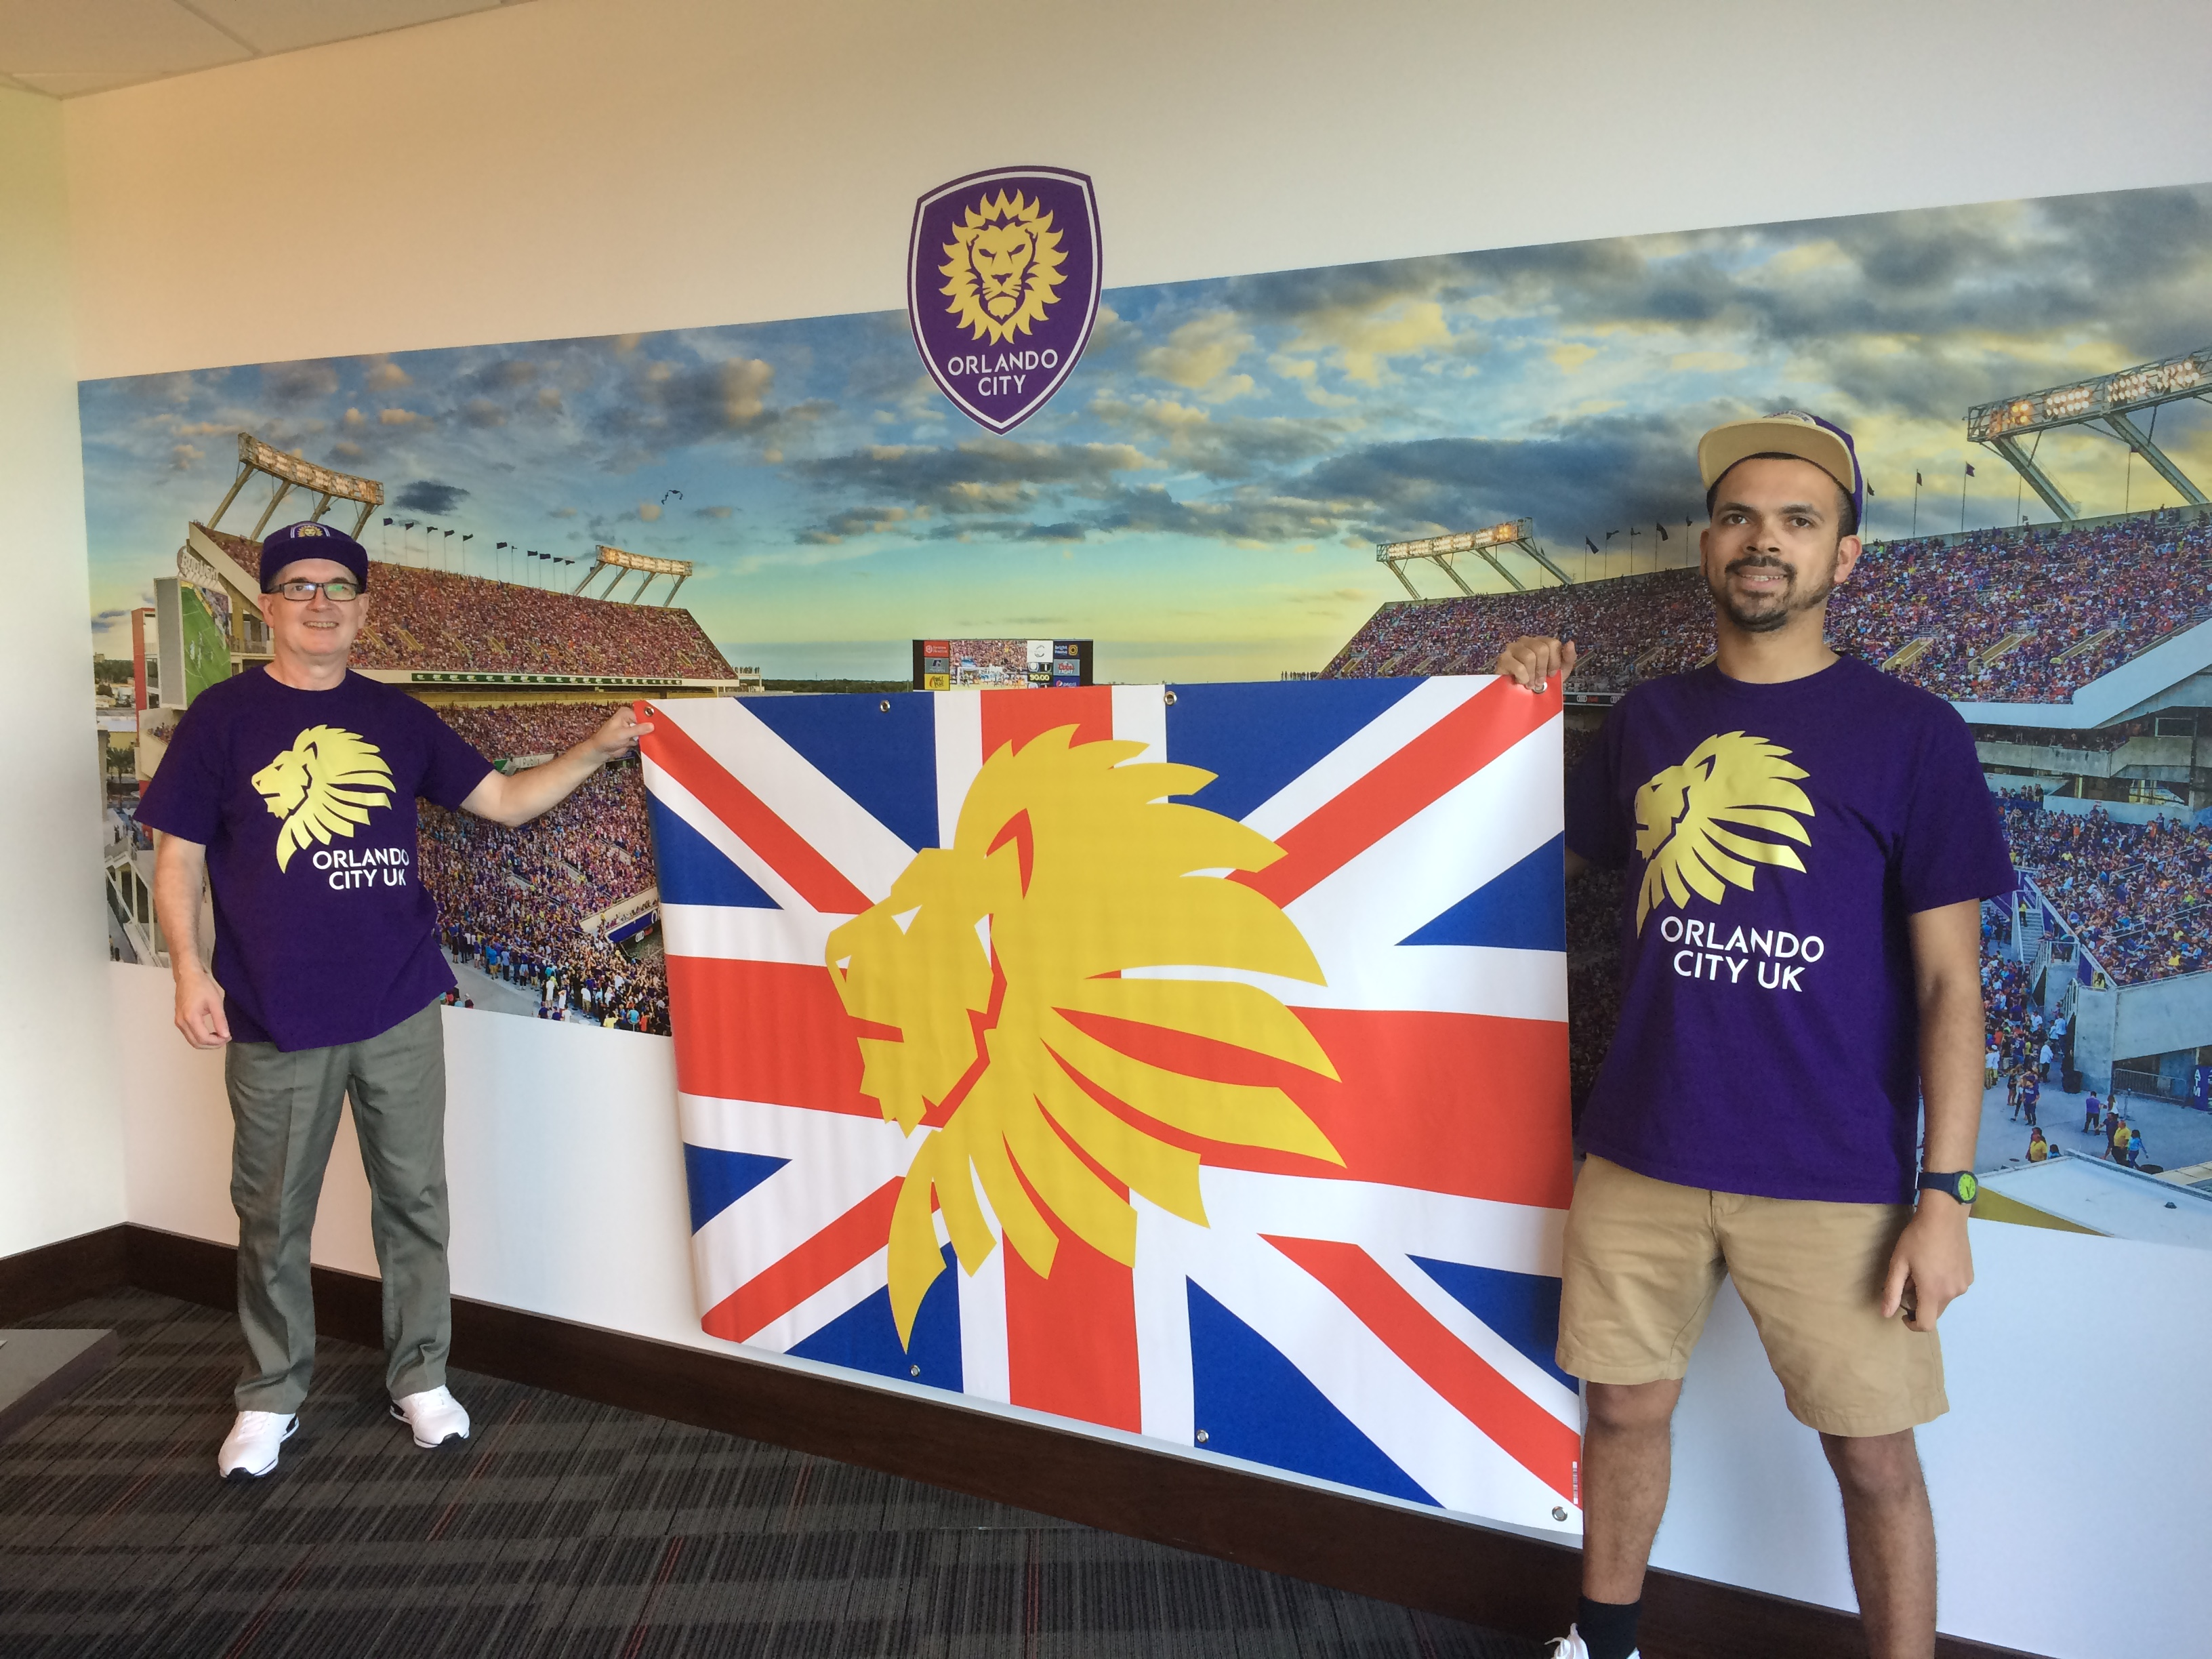 Orlando City UK Revisiting Orlando this May - June 2017